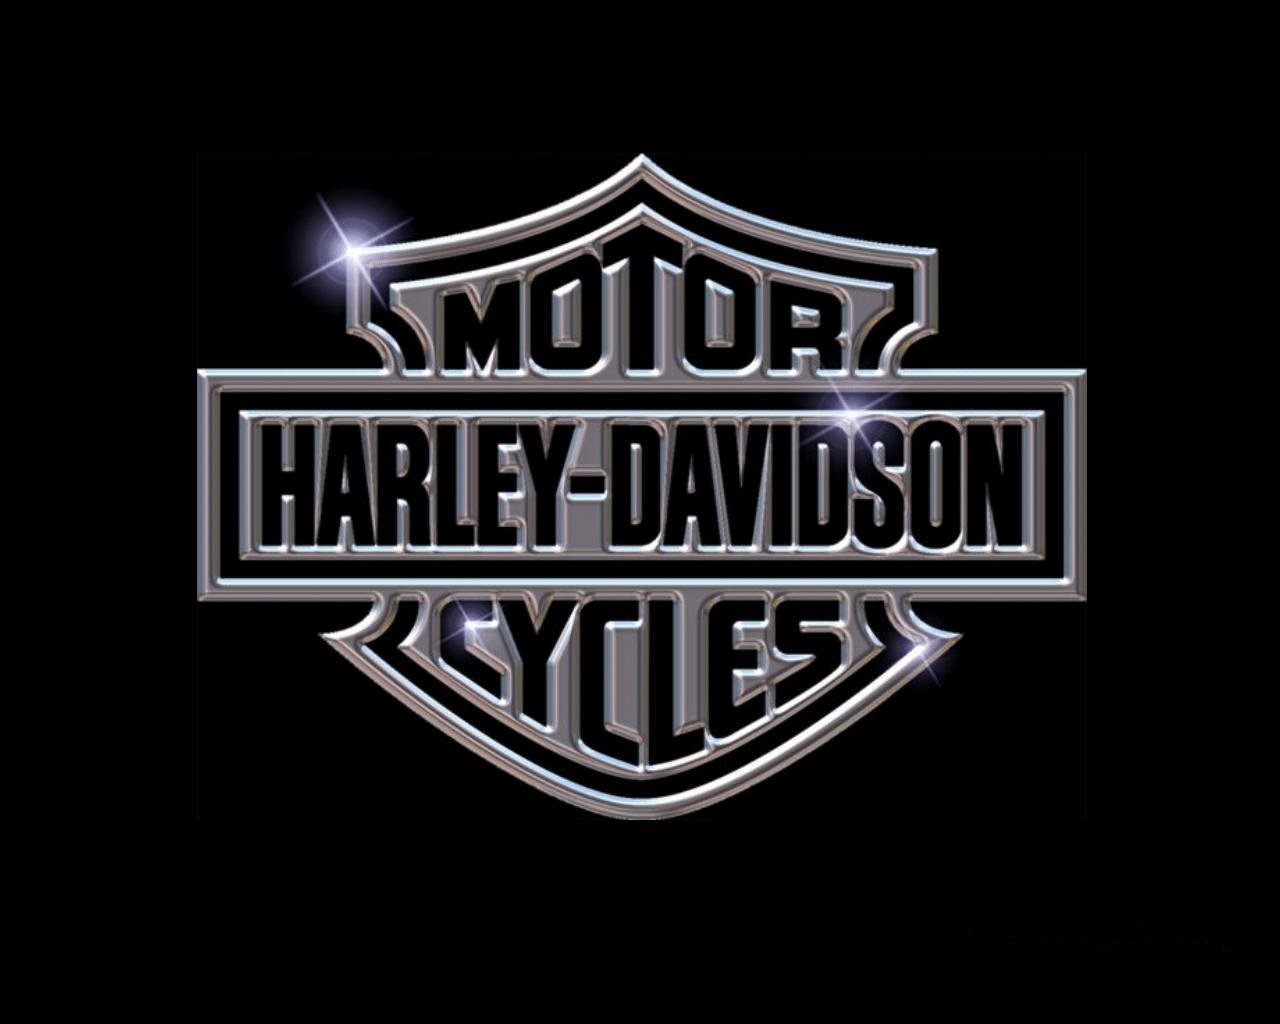 Harley Davidson Wallpaper   Animated Desktop Wallpaper 1280x1024